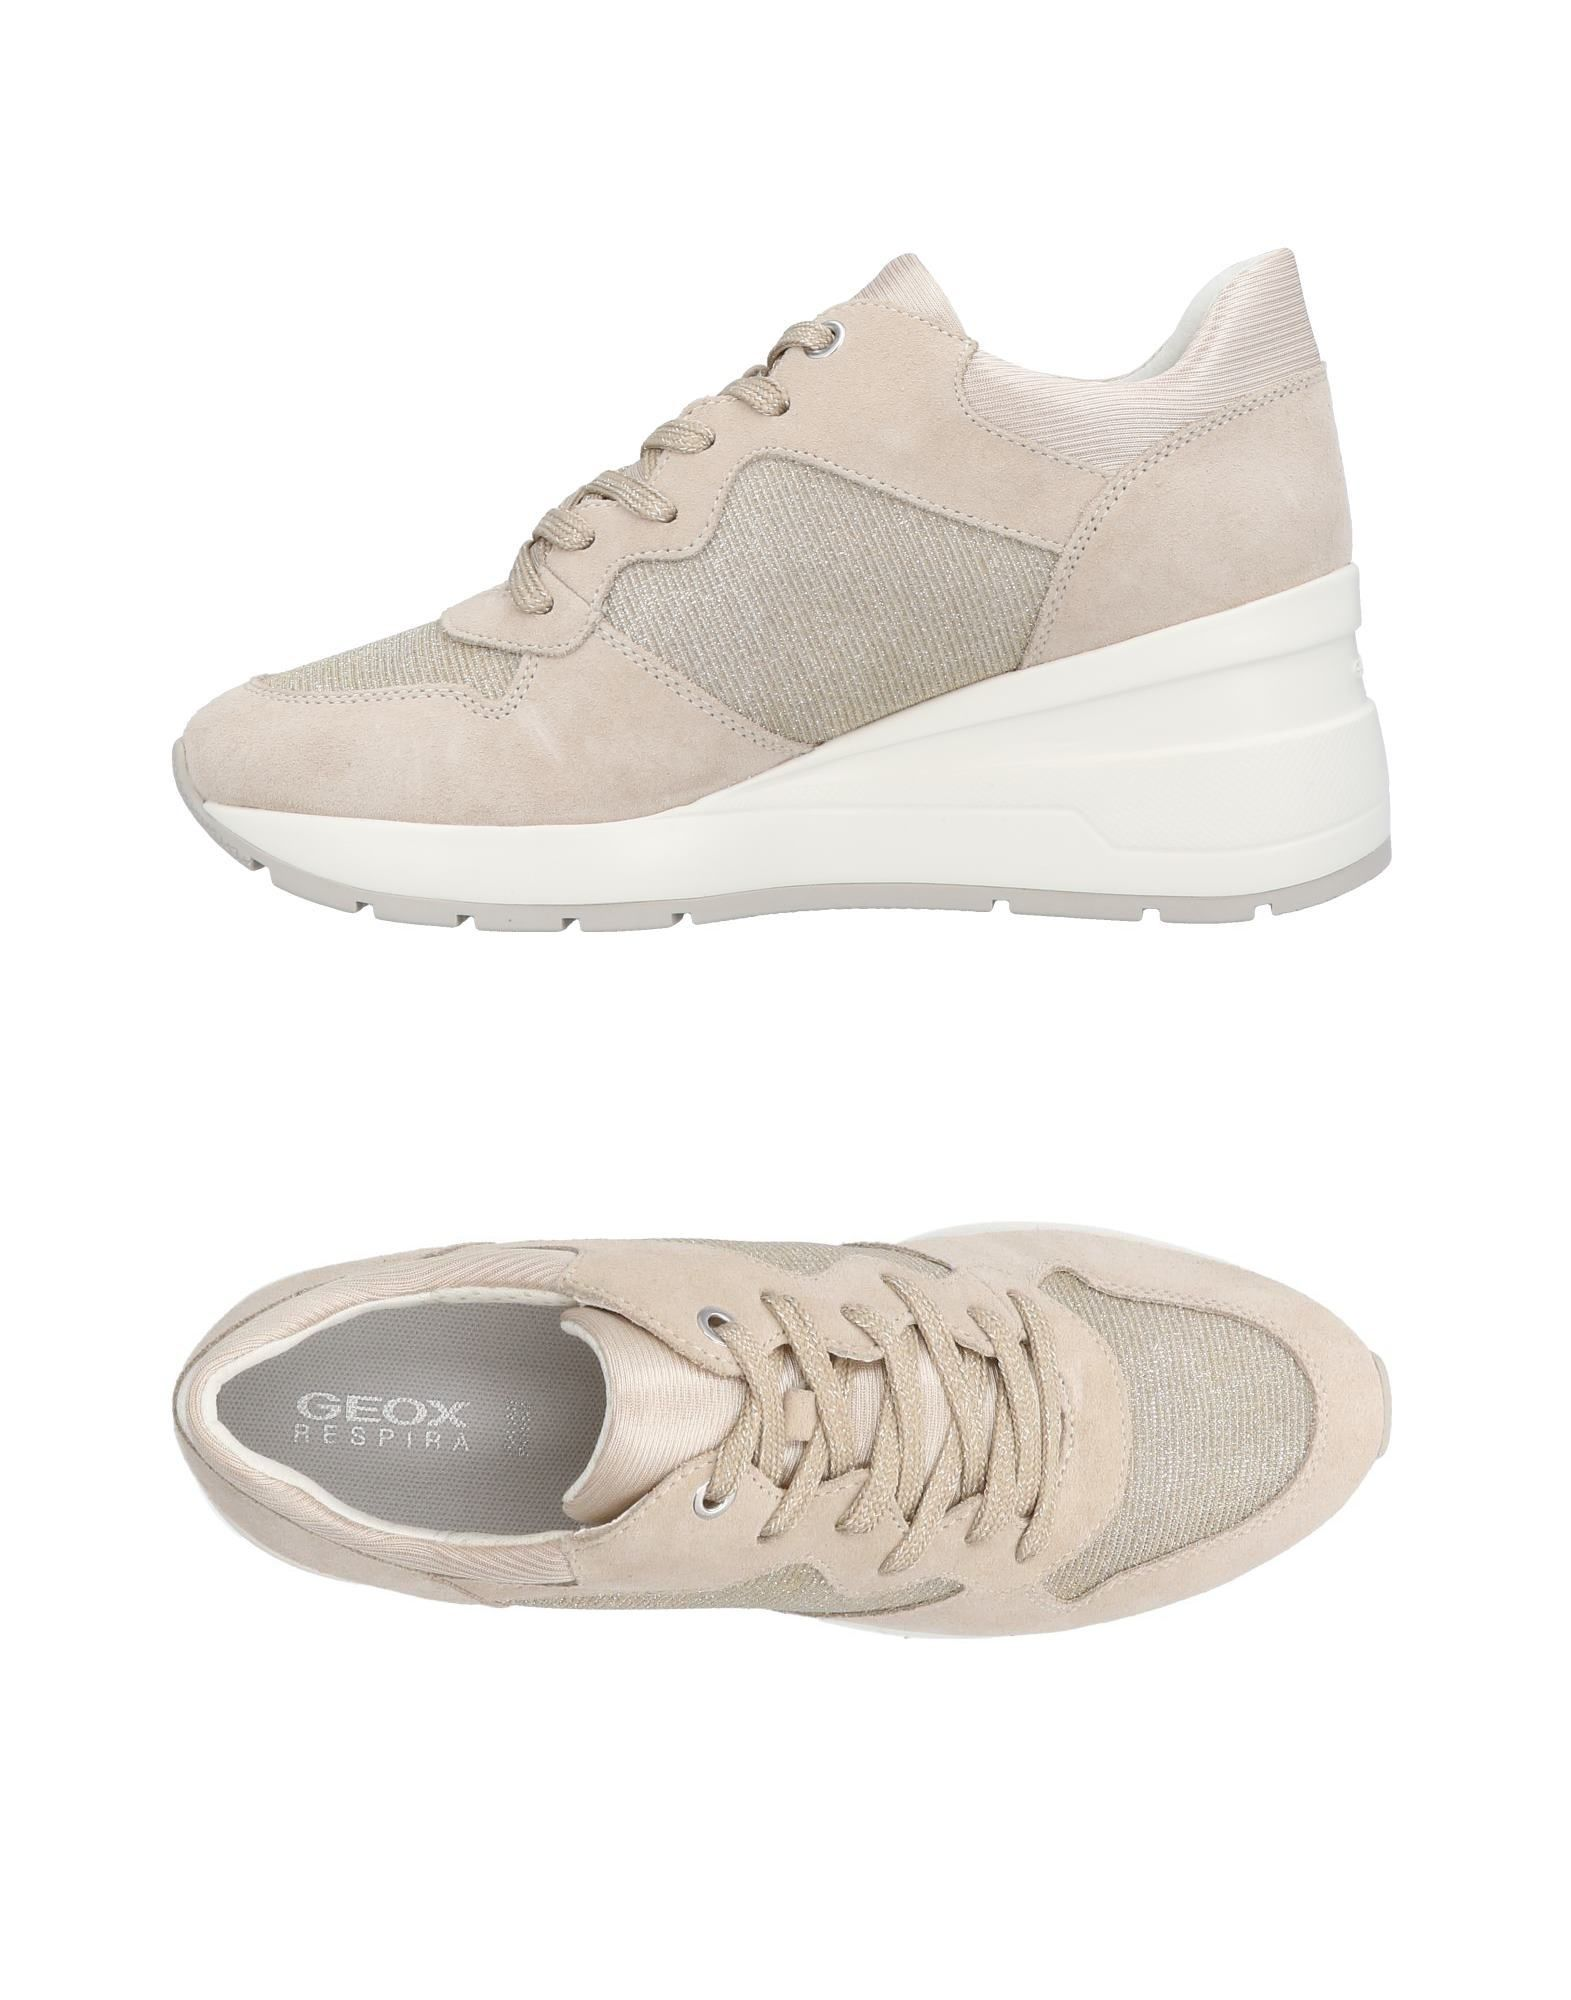 A buon mercato Sneakers Geox Donna - 11453912IS